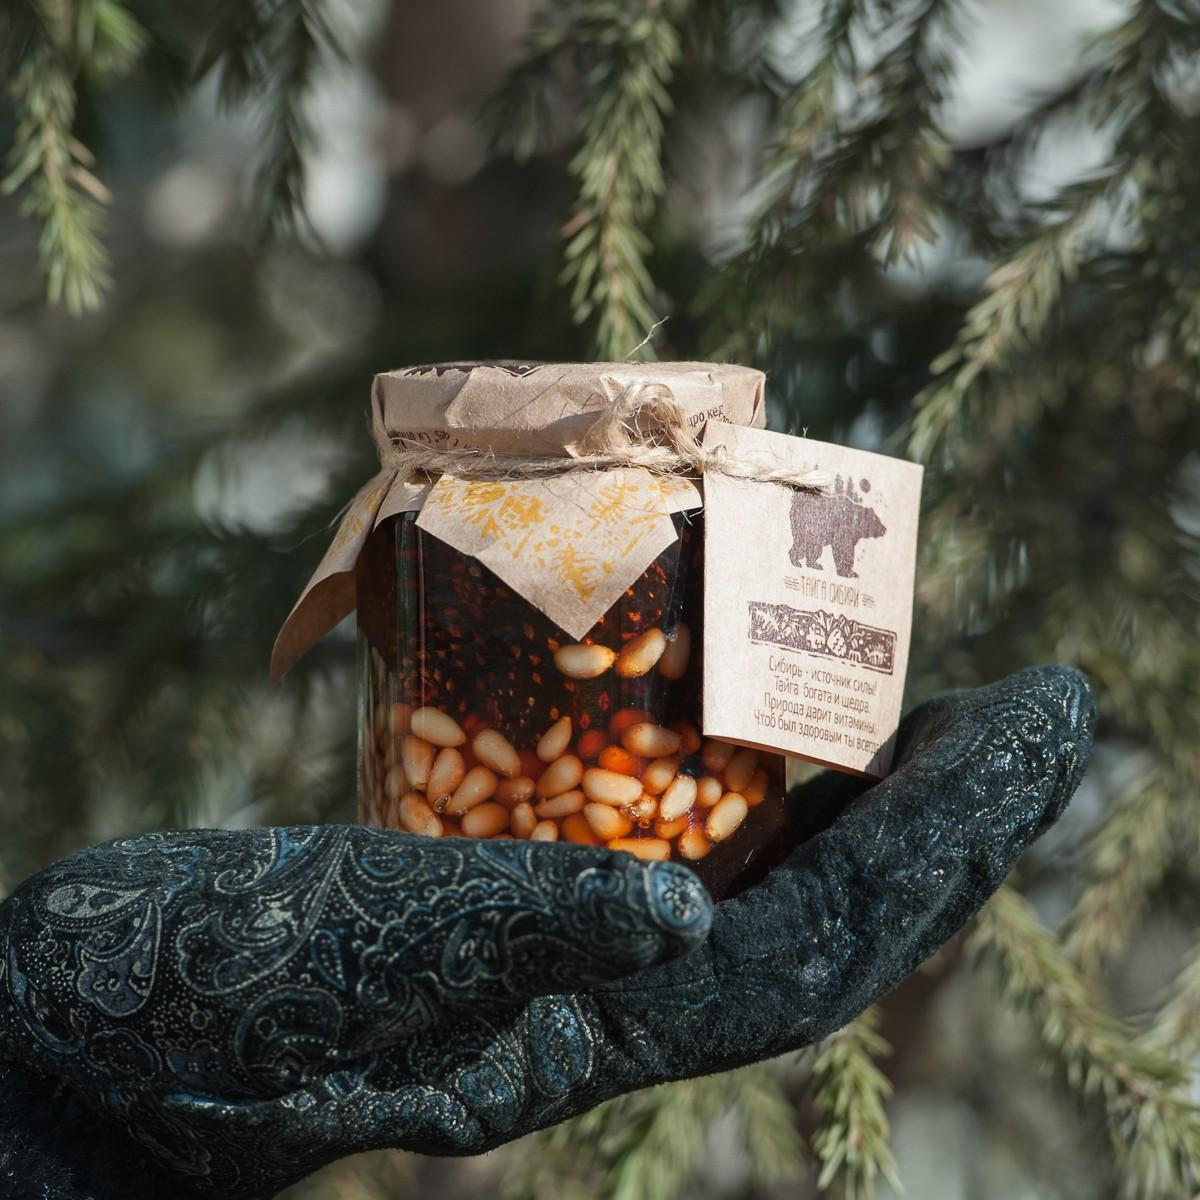 jam from pine cones with pine nuts - Products to bring from Krasnoyarsk: TOP 6 – the best ideas!